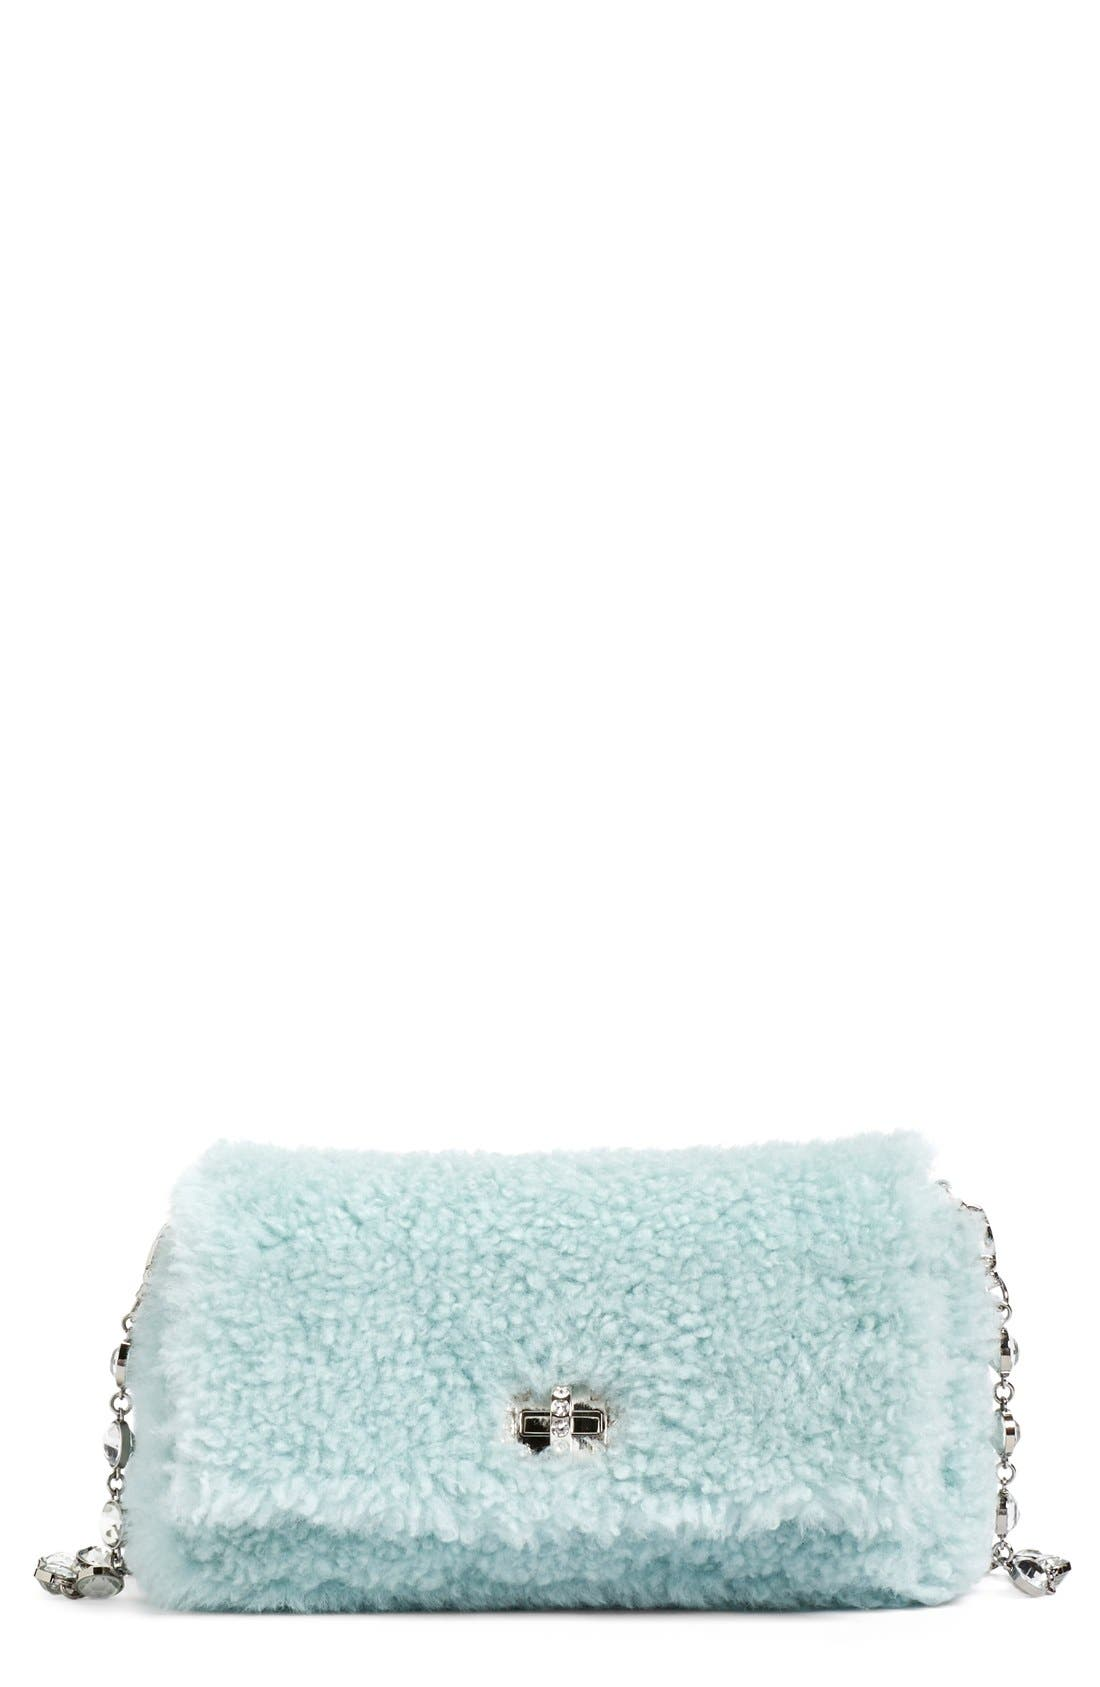 Alternate Image 1 Selected - Miu Miu Small Genuine Shearling Shoulder Bag